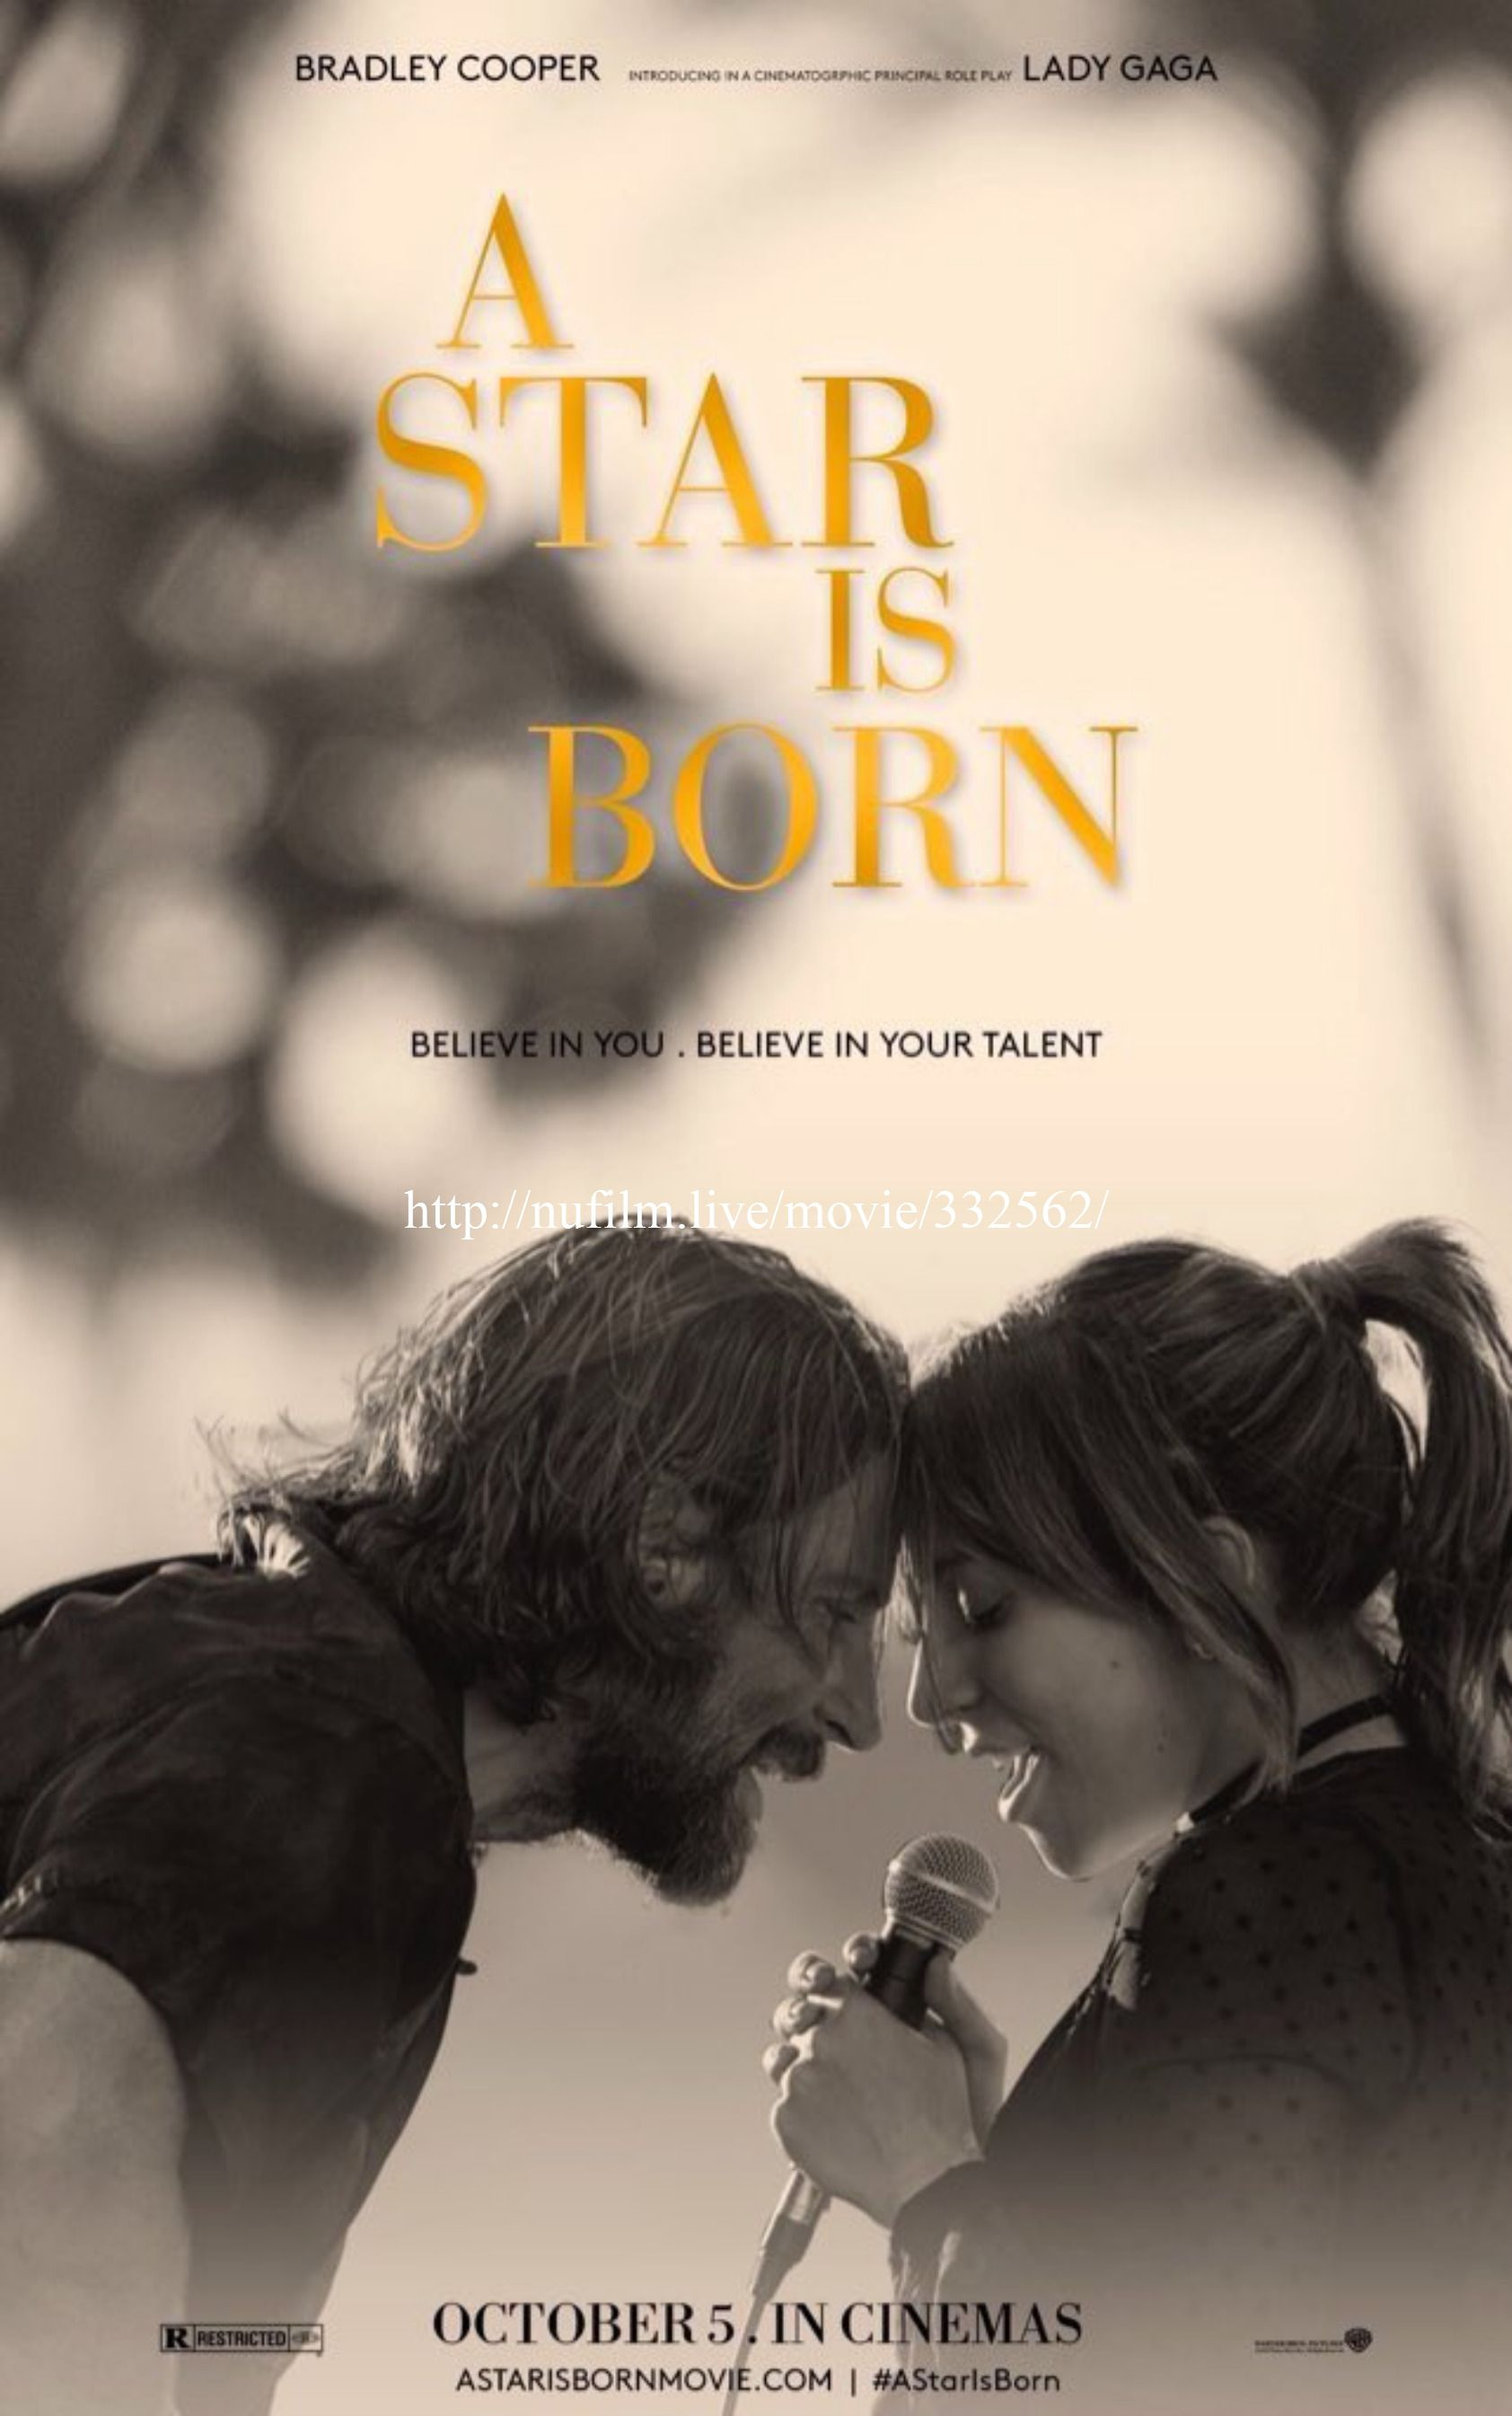 Regarder A Star Is Born 2018 Streaming Vf Film Complet French Hlzu Films Complets Film Romantique Film